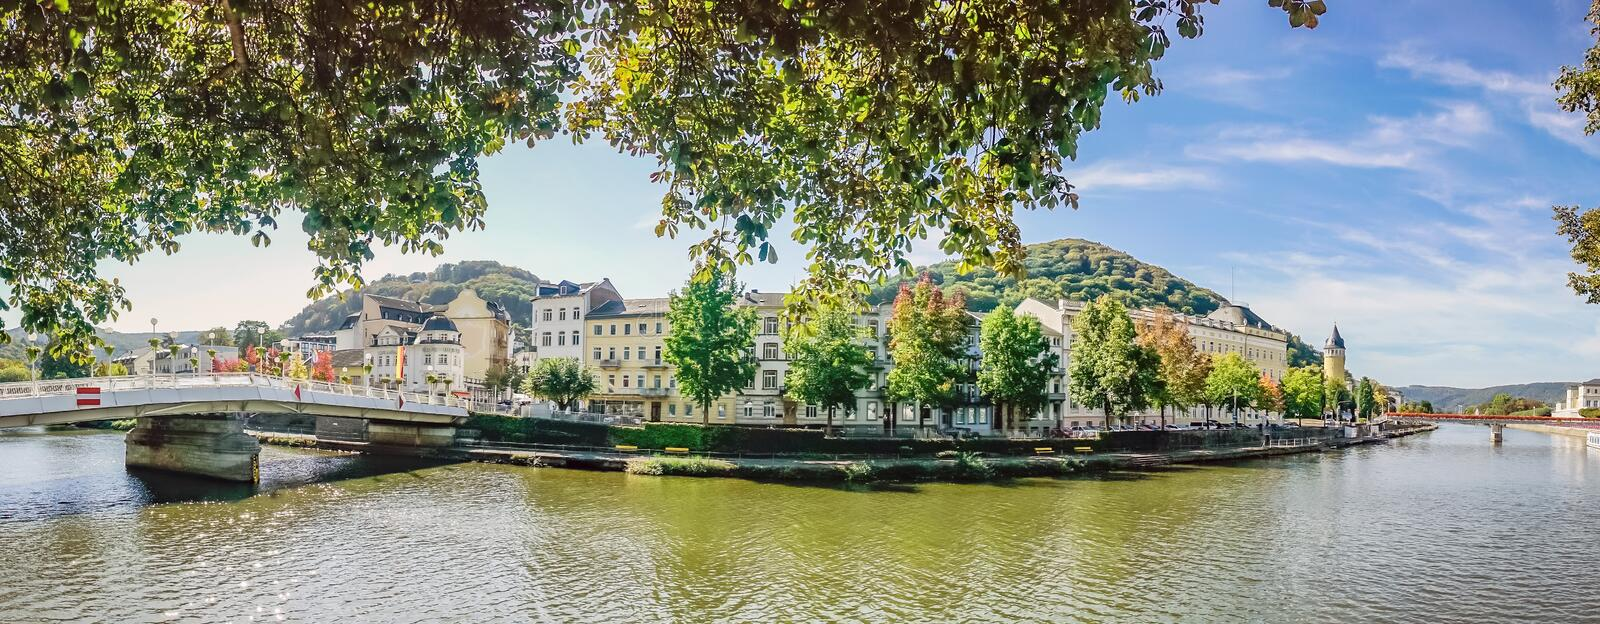 Bad Ems in Germany royalty free stock photo